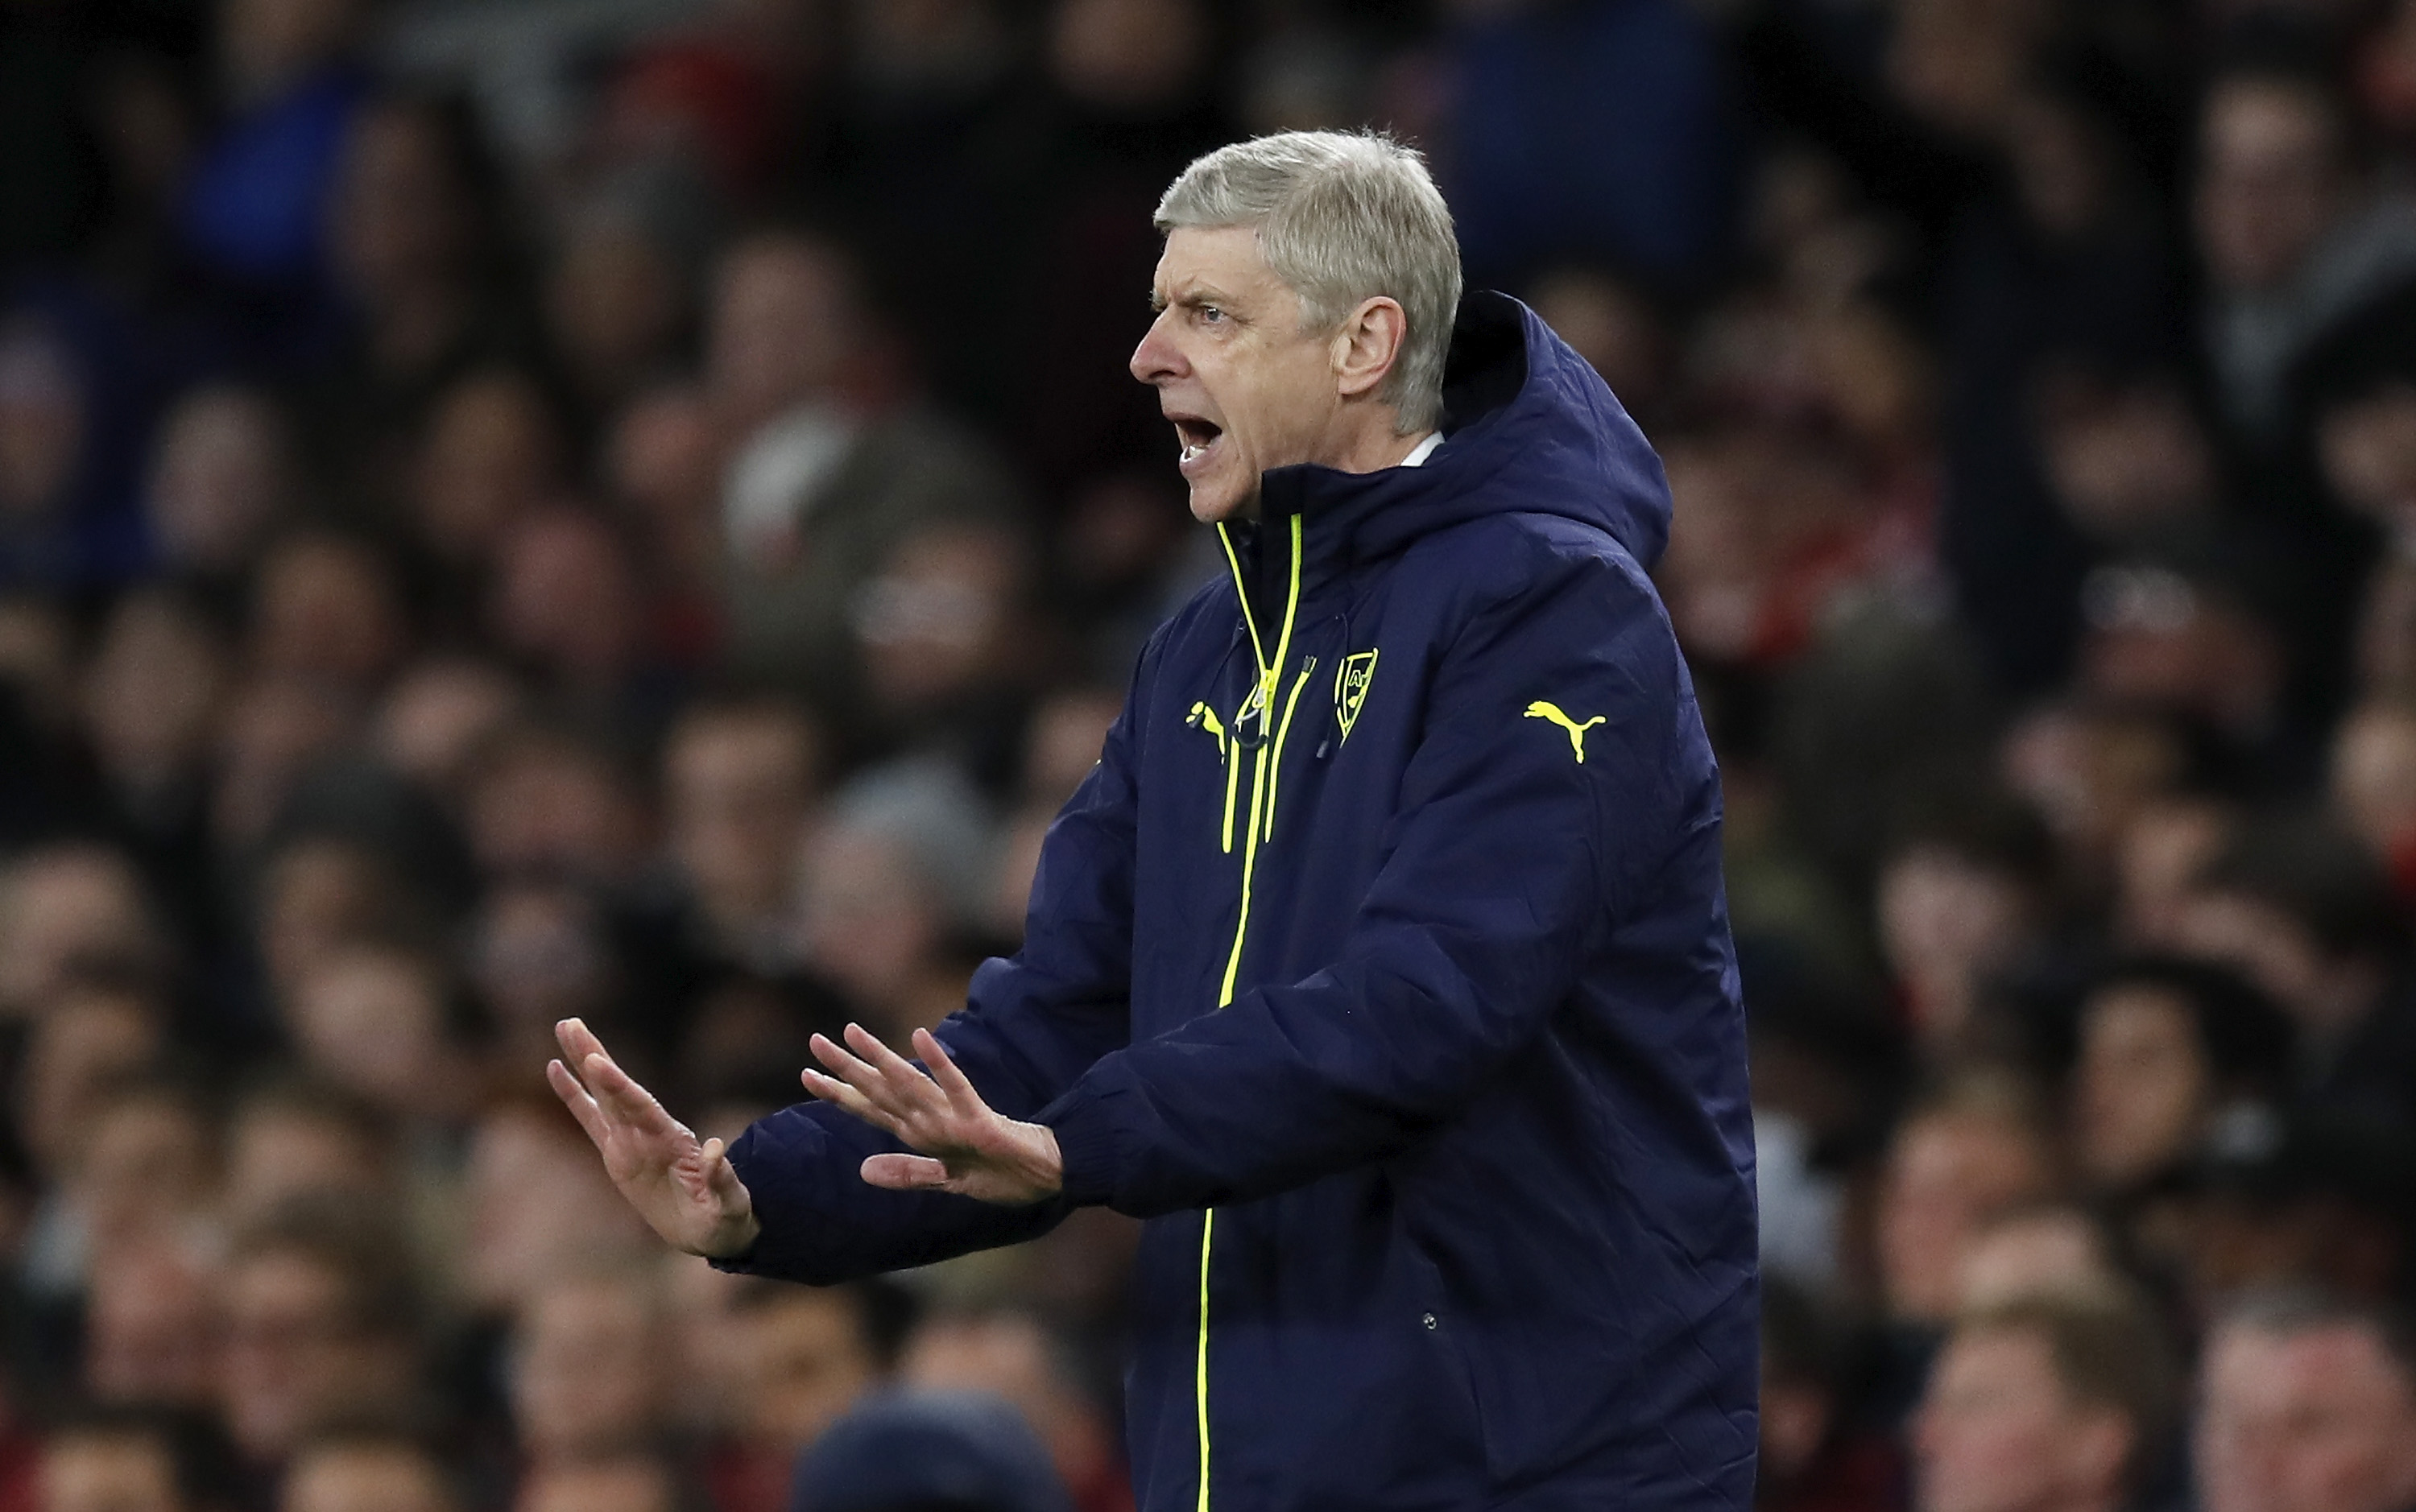 Arsene Wenger should stay at Arsenal, but needs experienced signings – William Gallas